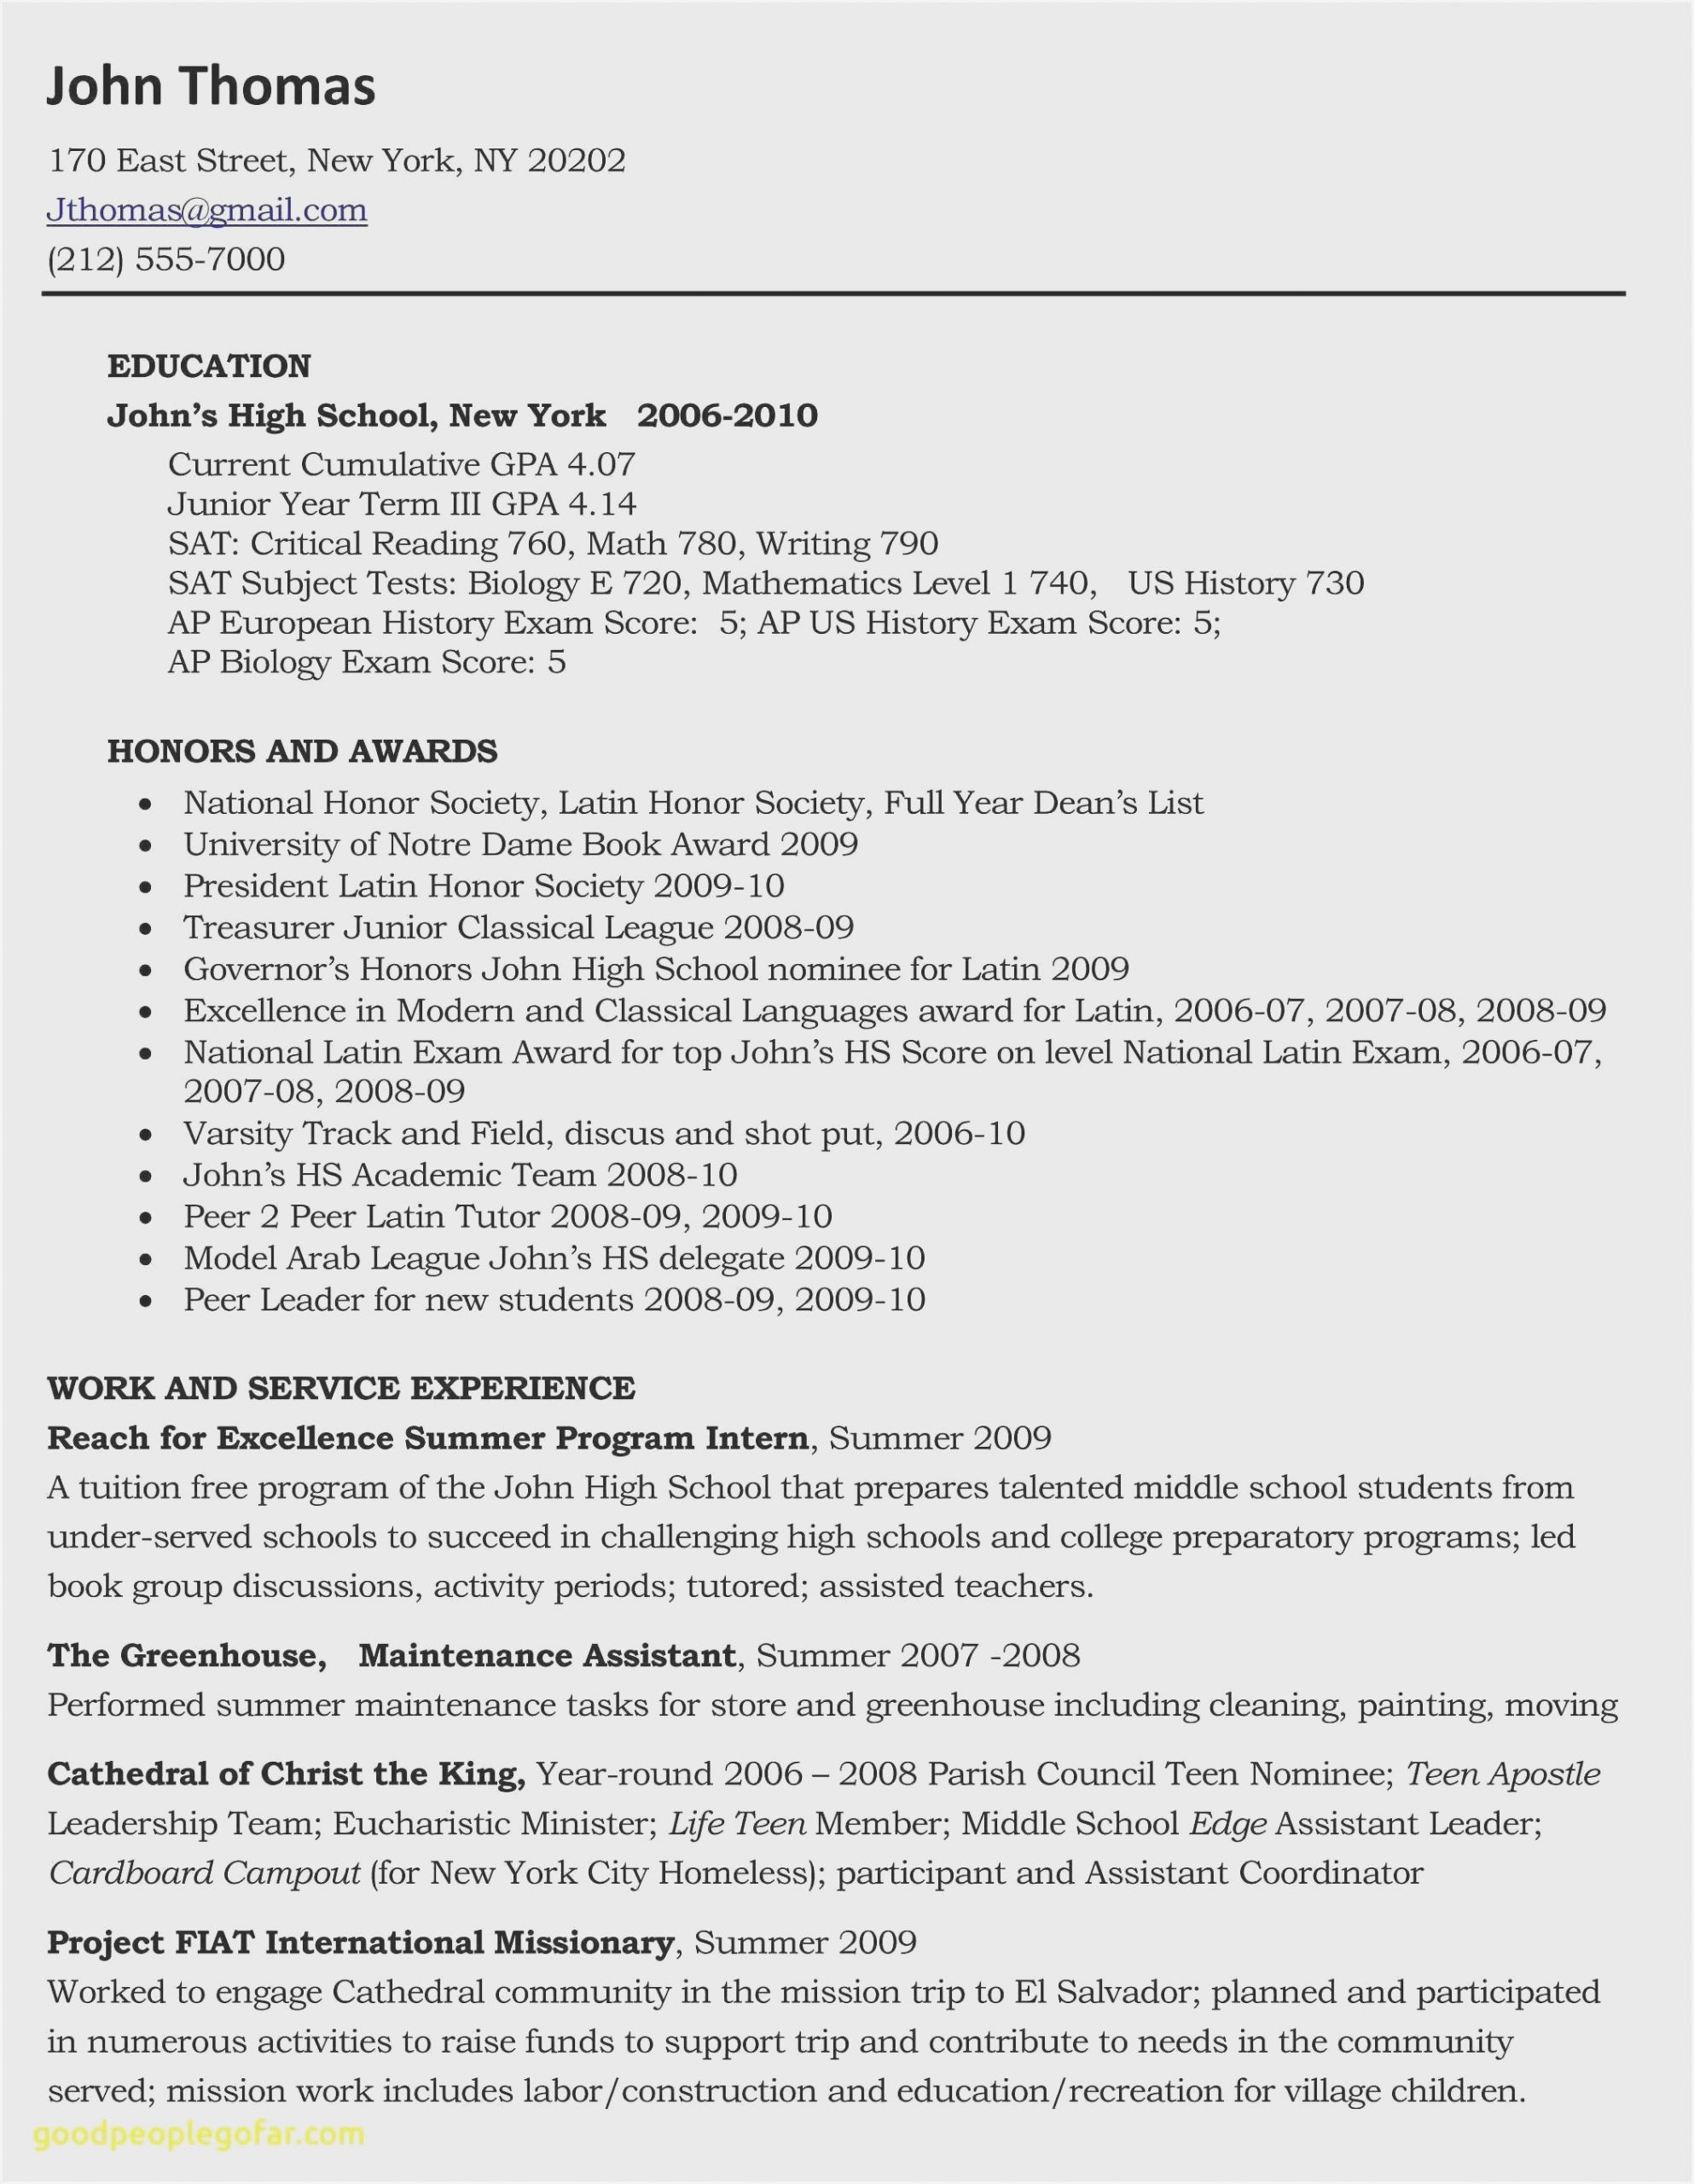 sample resume for cna entry level free examples scaled atv sponsorship template objective Resume Entry Level Cna Resume